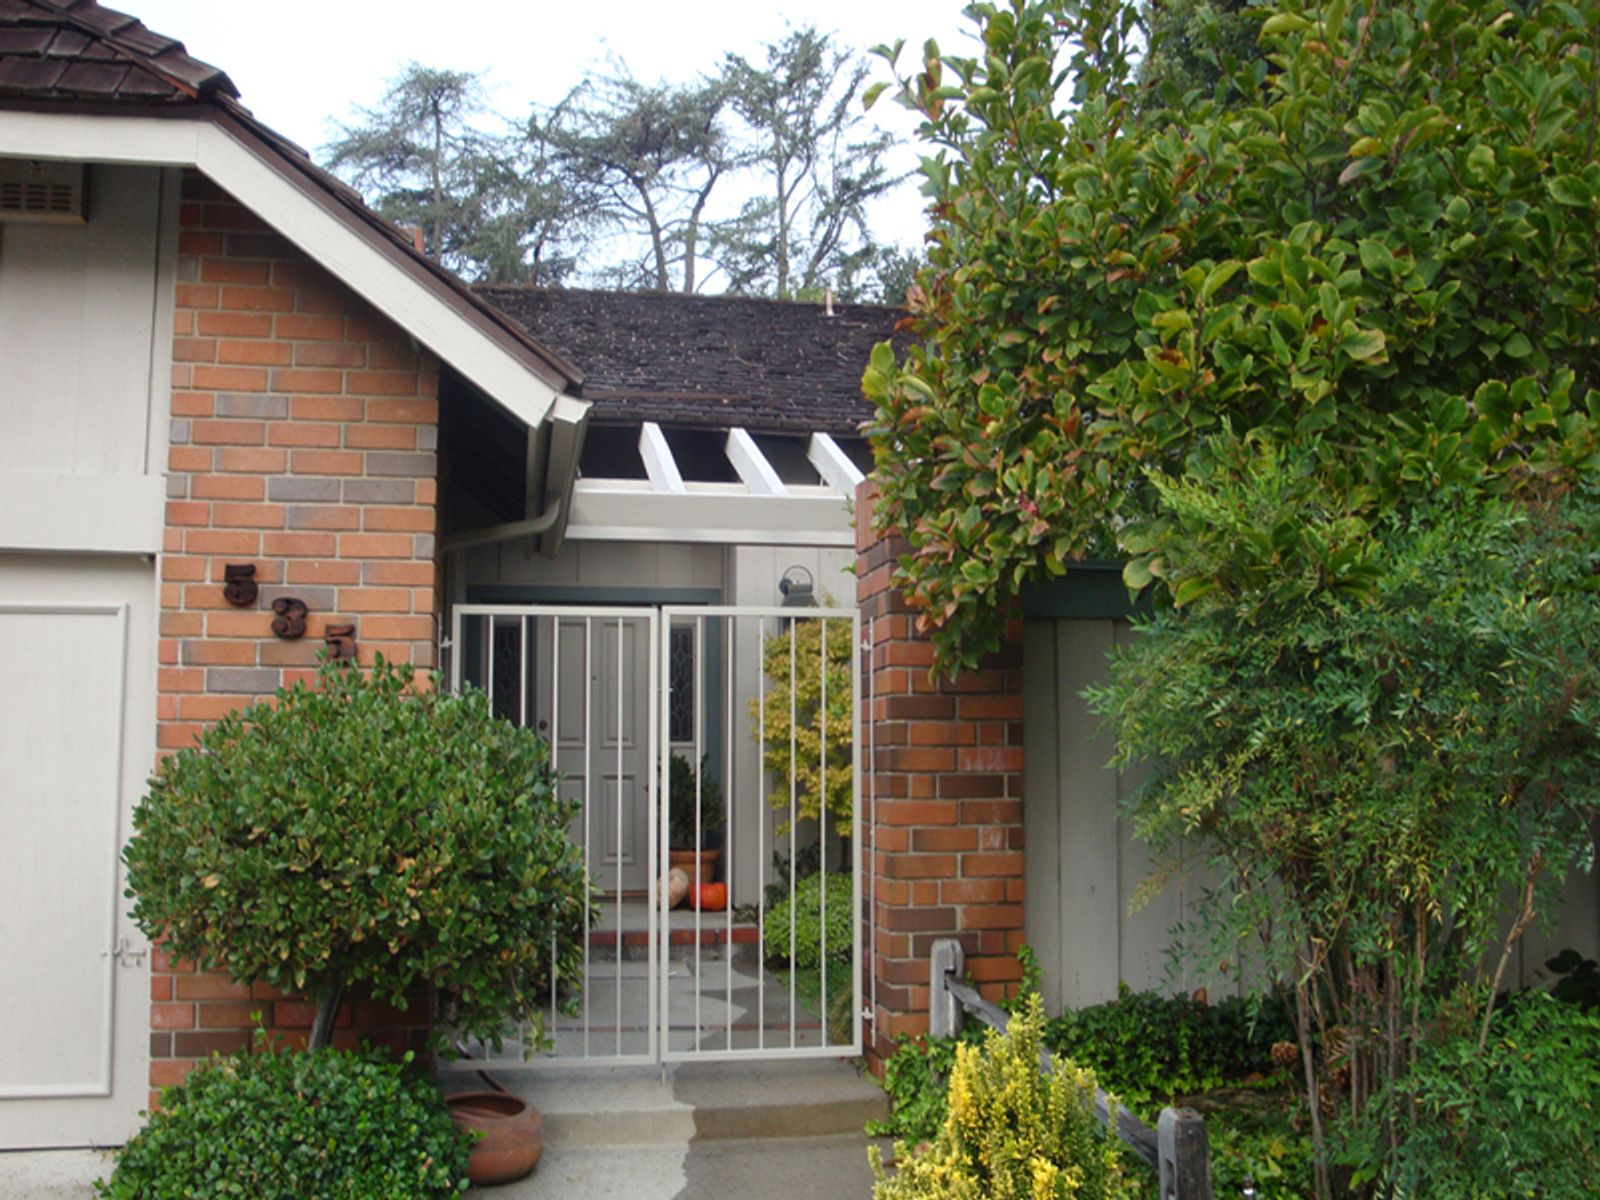 Chapman Woods, Pasadena CA Single Family Home - Pasadena Real Estate